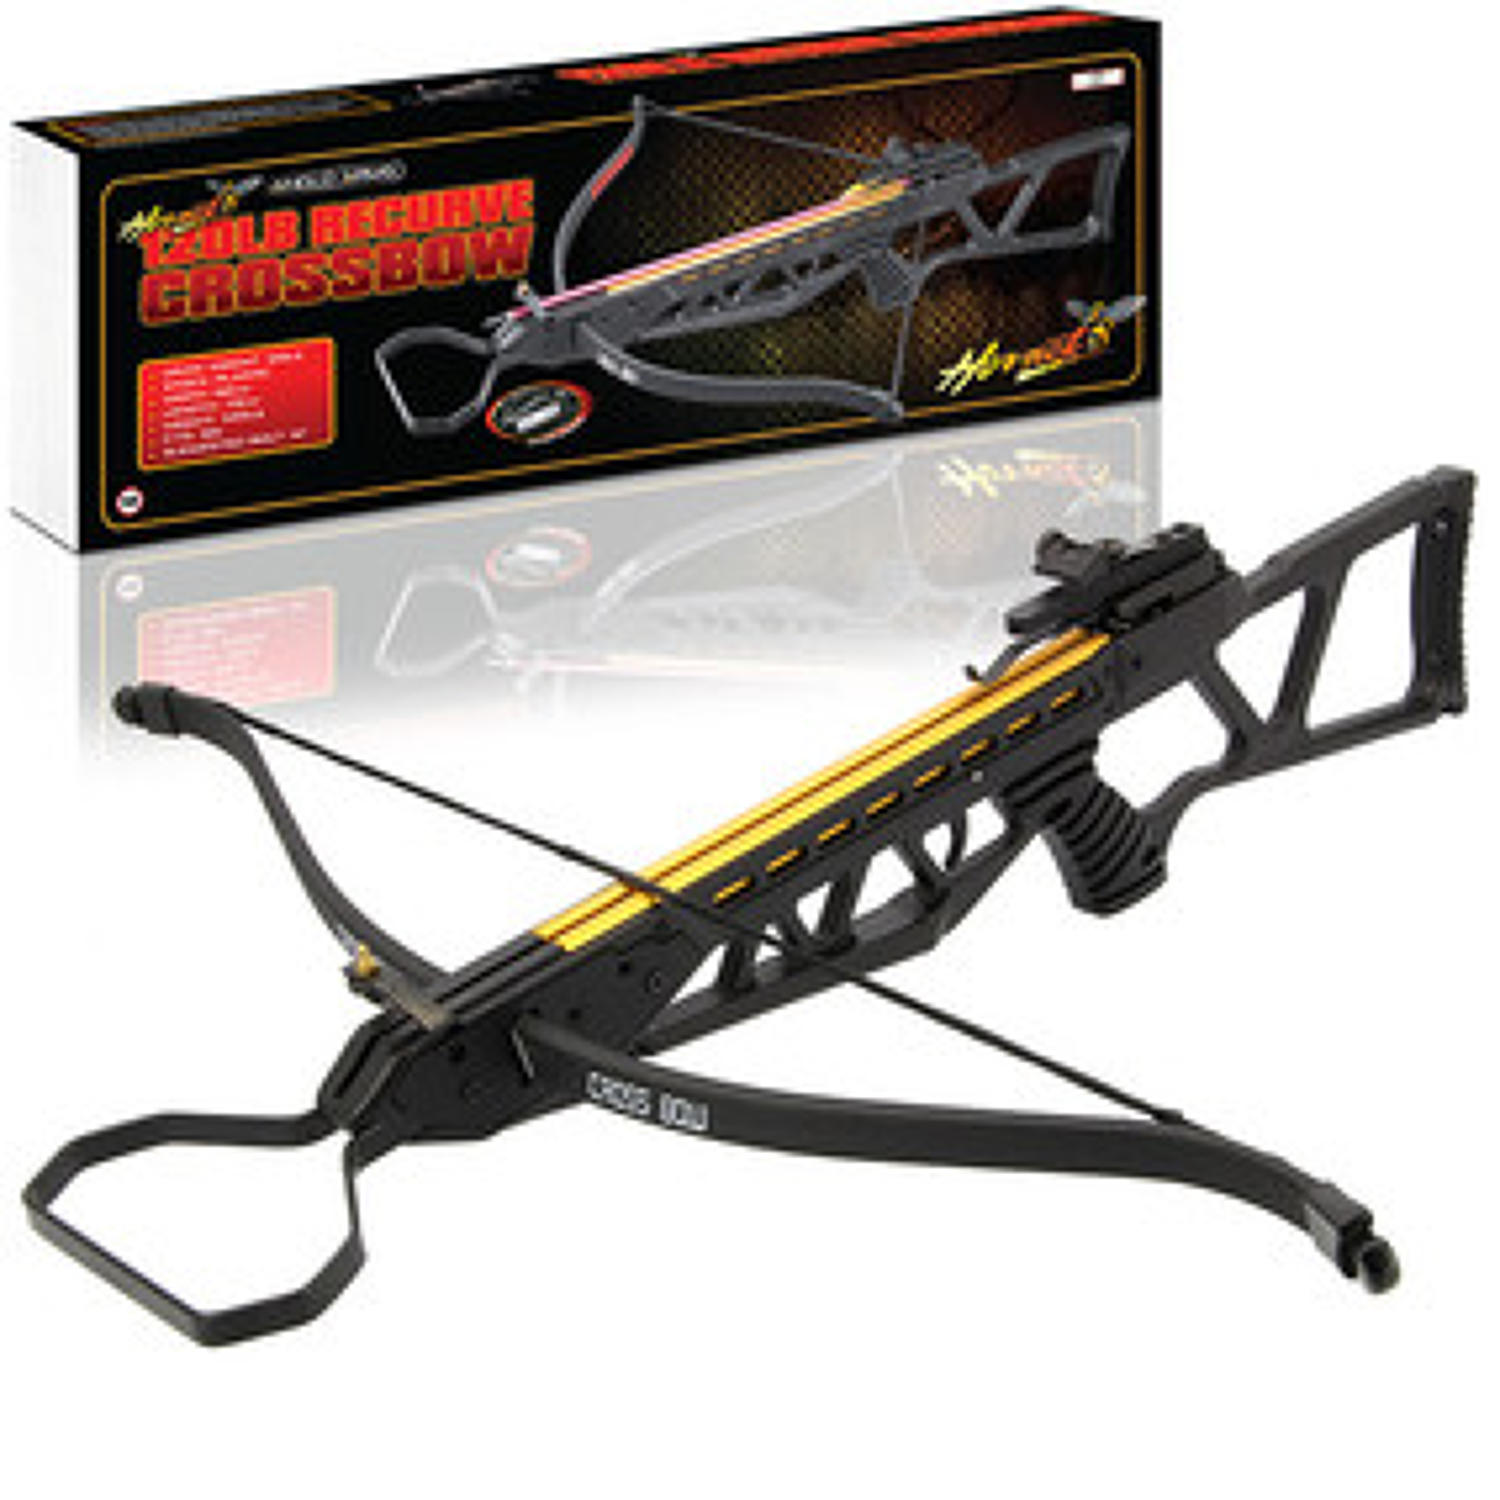 Anglo Arms - Hornet 120lb Recurve Crossbow in Sports / Anglo